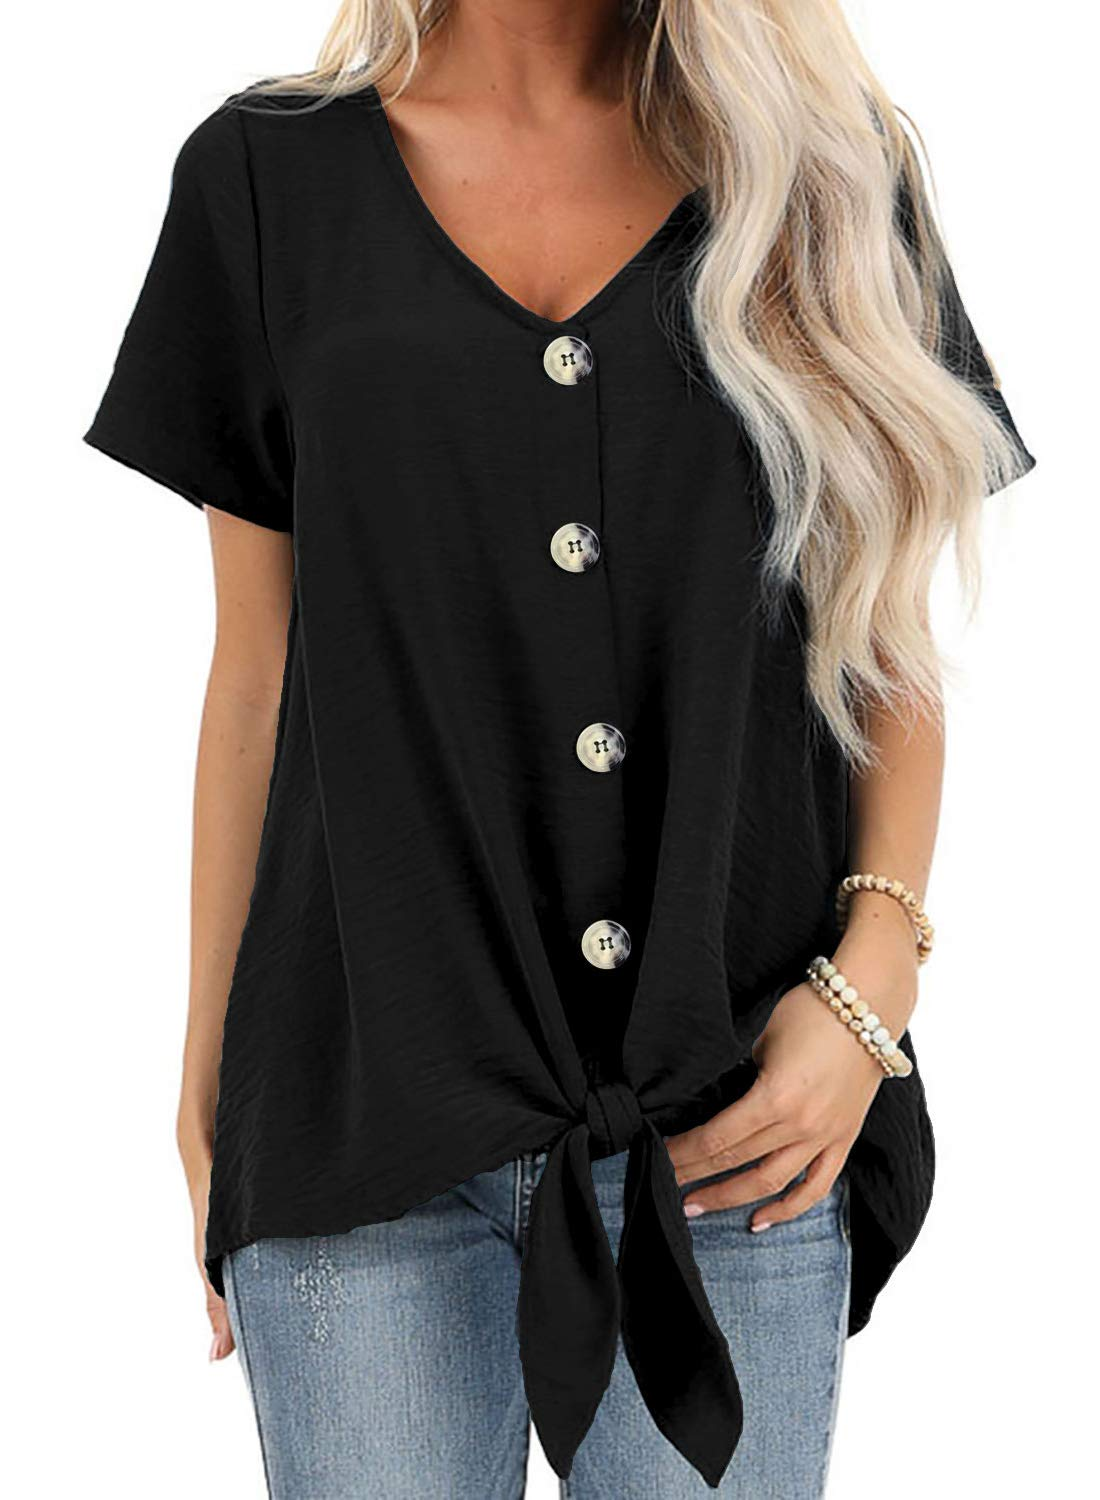 ZKESS Women Casual Long Sleeve Button Down V Neck Knot Twist Fashion Blouse and Tops